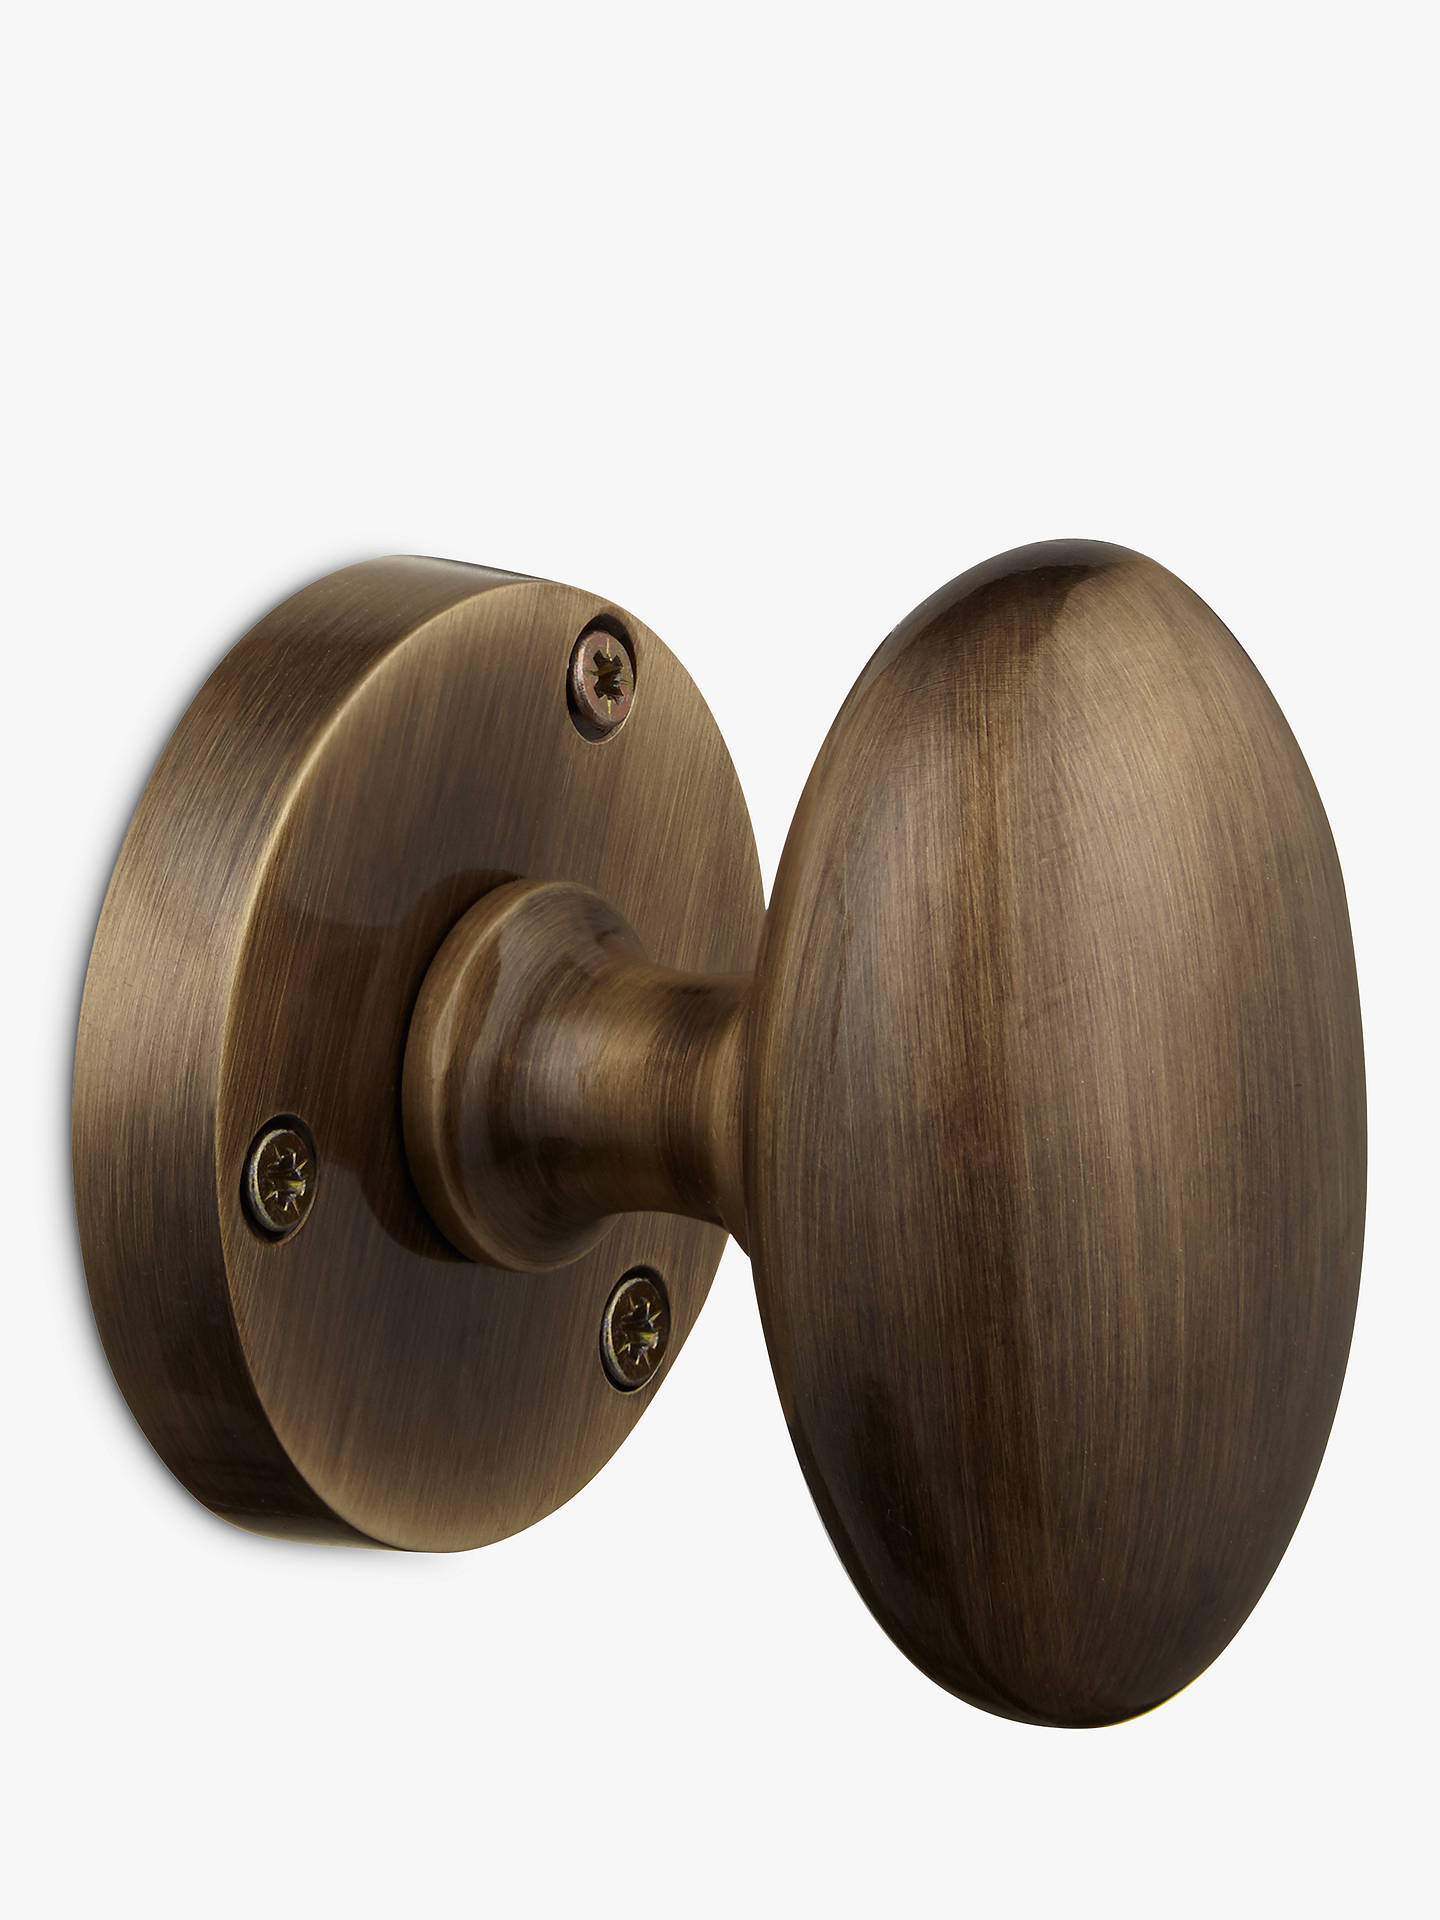 Buy John Lewis & Partners Oval Mortice Knob, Set of 2, Dia.56mm, Antique Brass Online at johnlewis.com